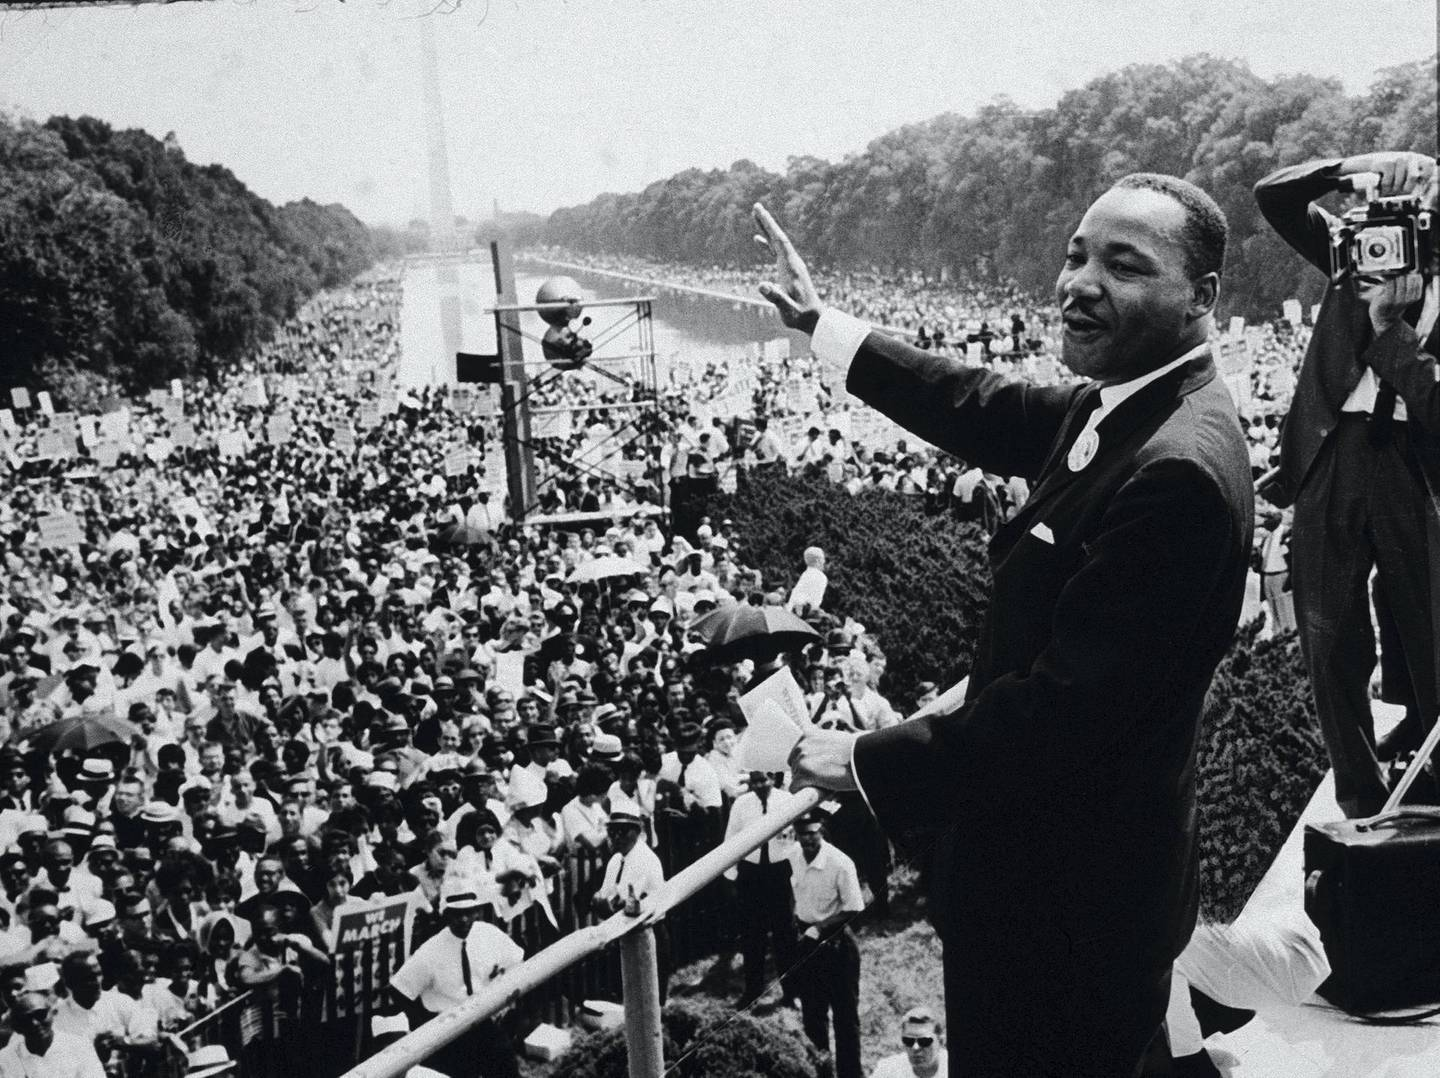 American Civil Rights leader Dr. Martin Luther King Jr. (1929-1968) addresses a crowd at the March On Washington D.C, 28th August 1963. (Photo by CNP/Getty Images)